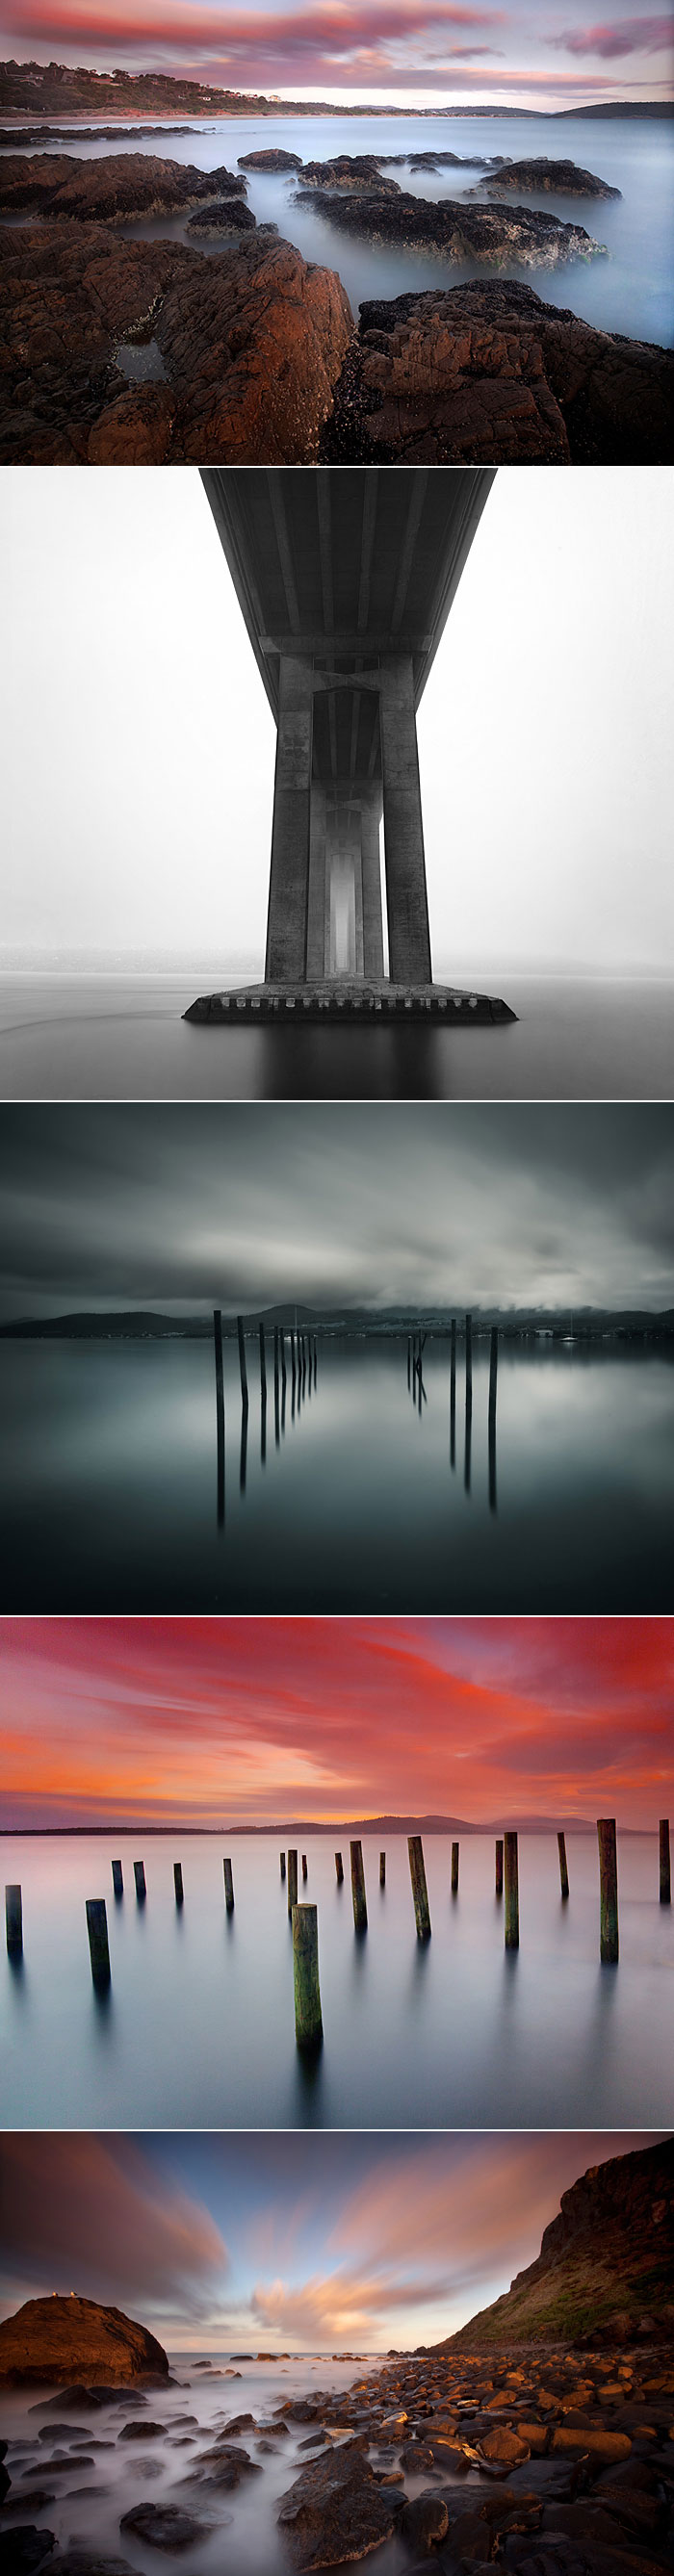 Photographs taken with neutral density filters referred to in this article